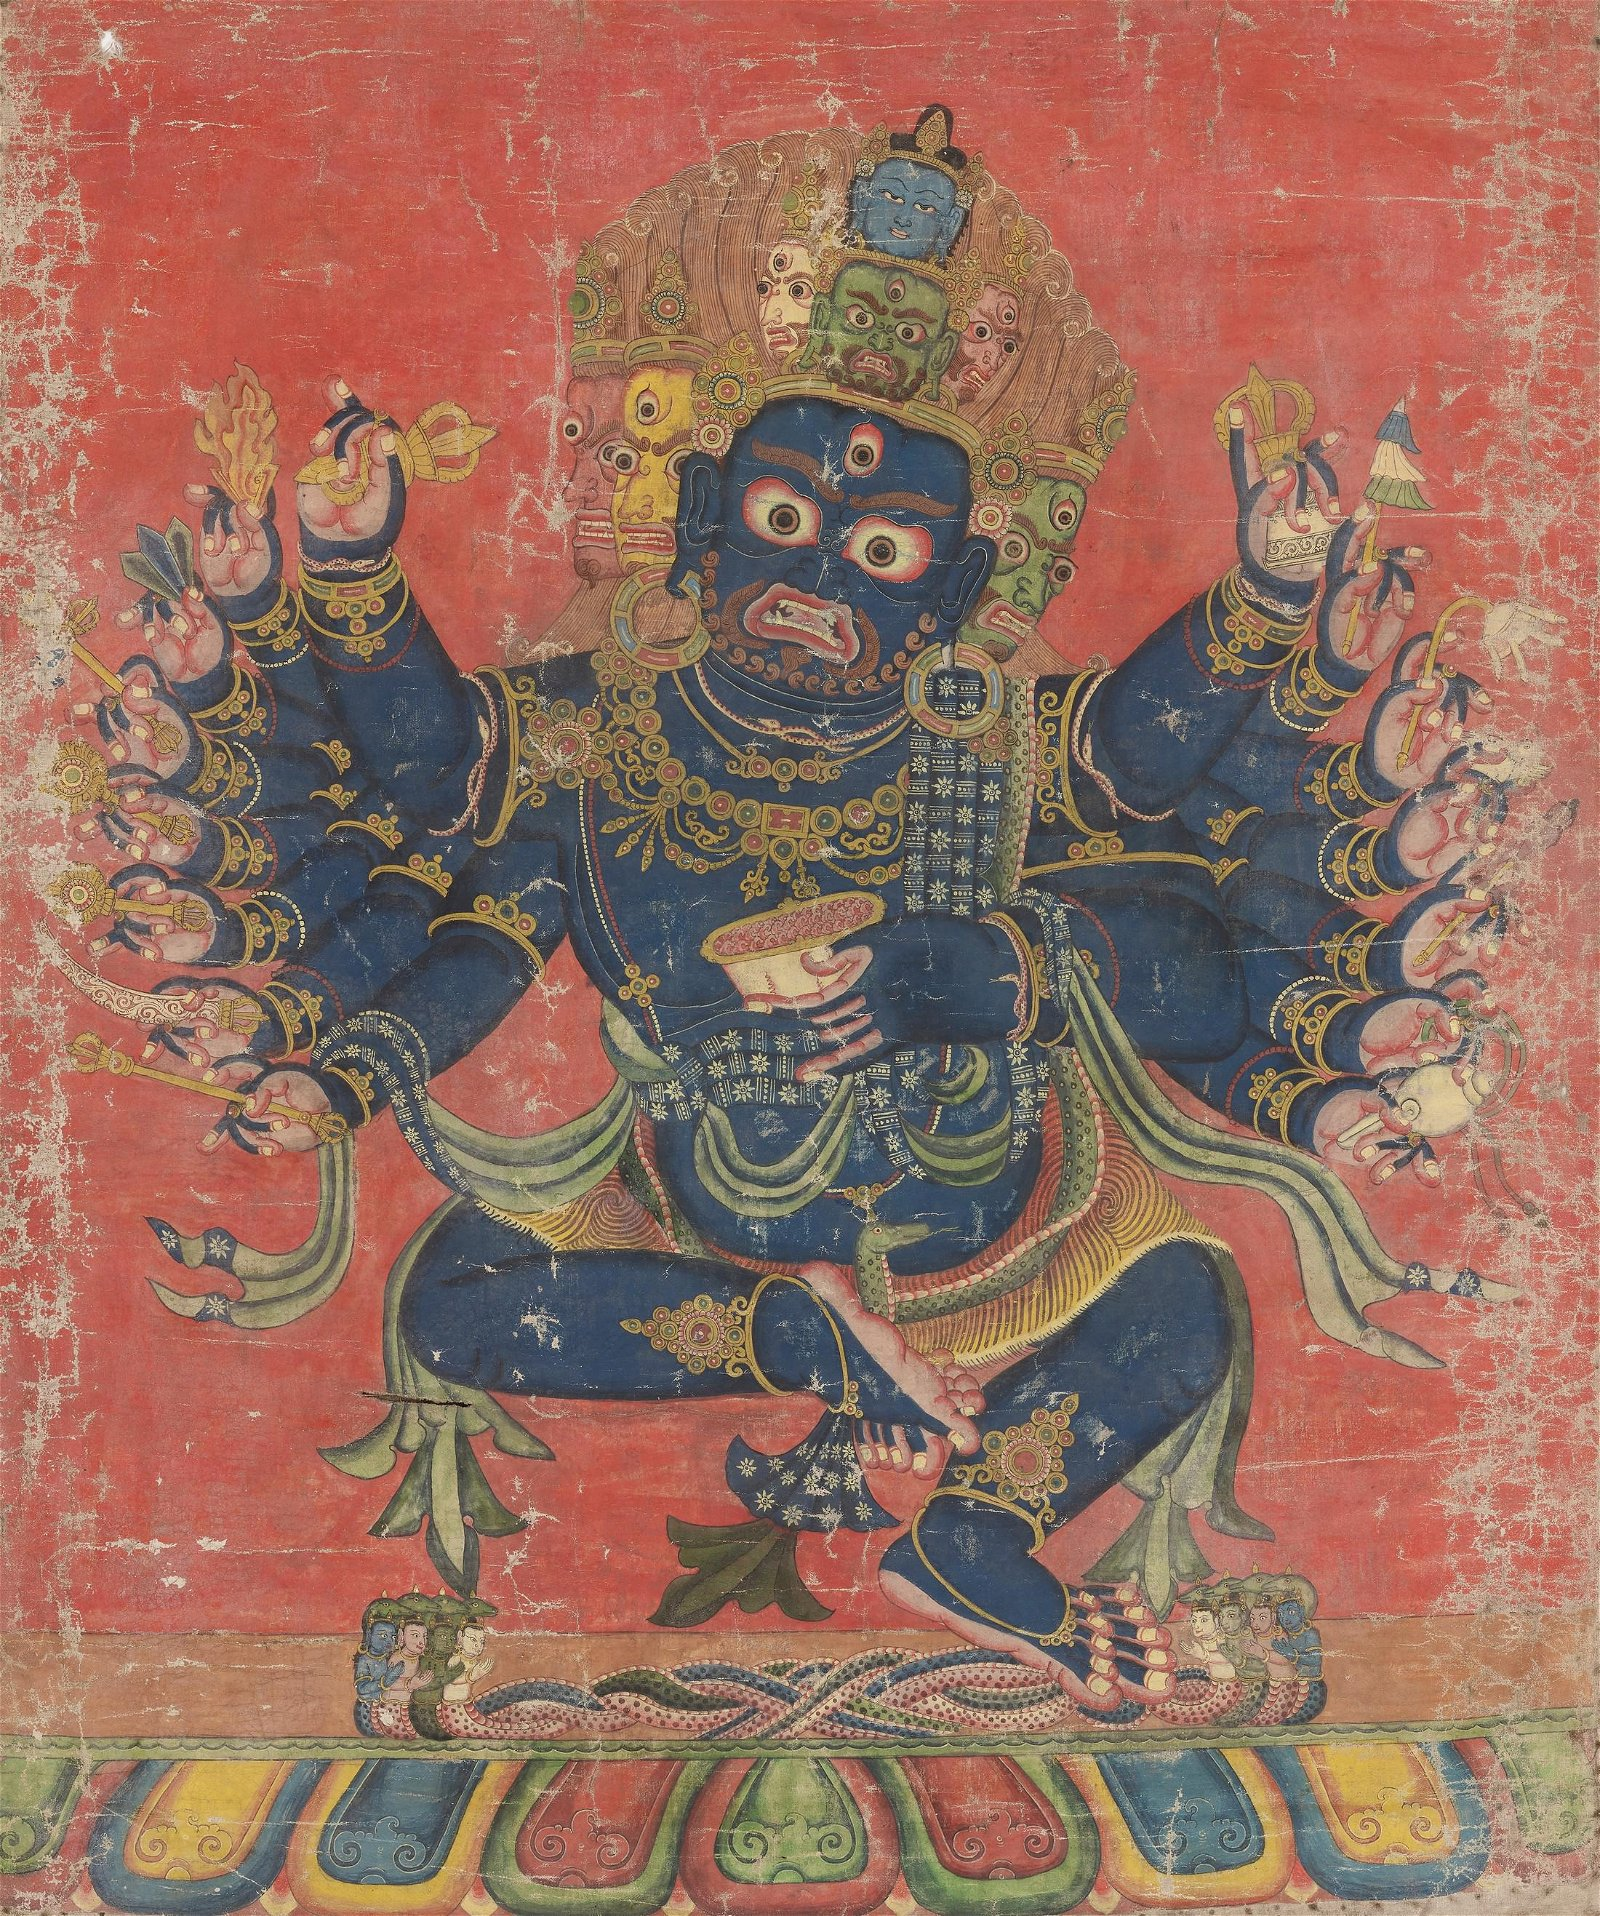 A THANGKA OF CHATURMUKHA MAHAKALA, 17TH CENTURY